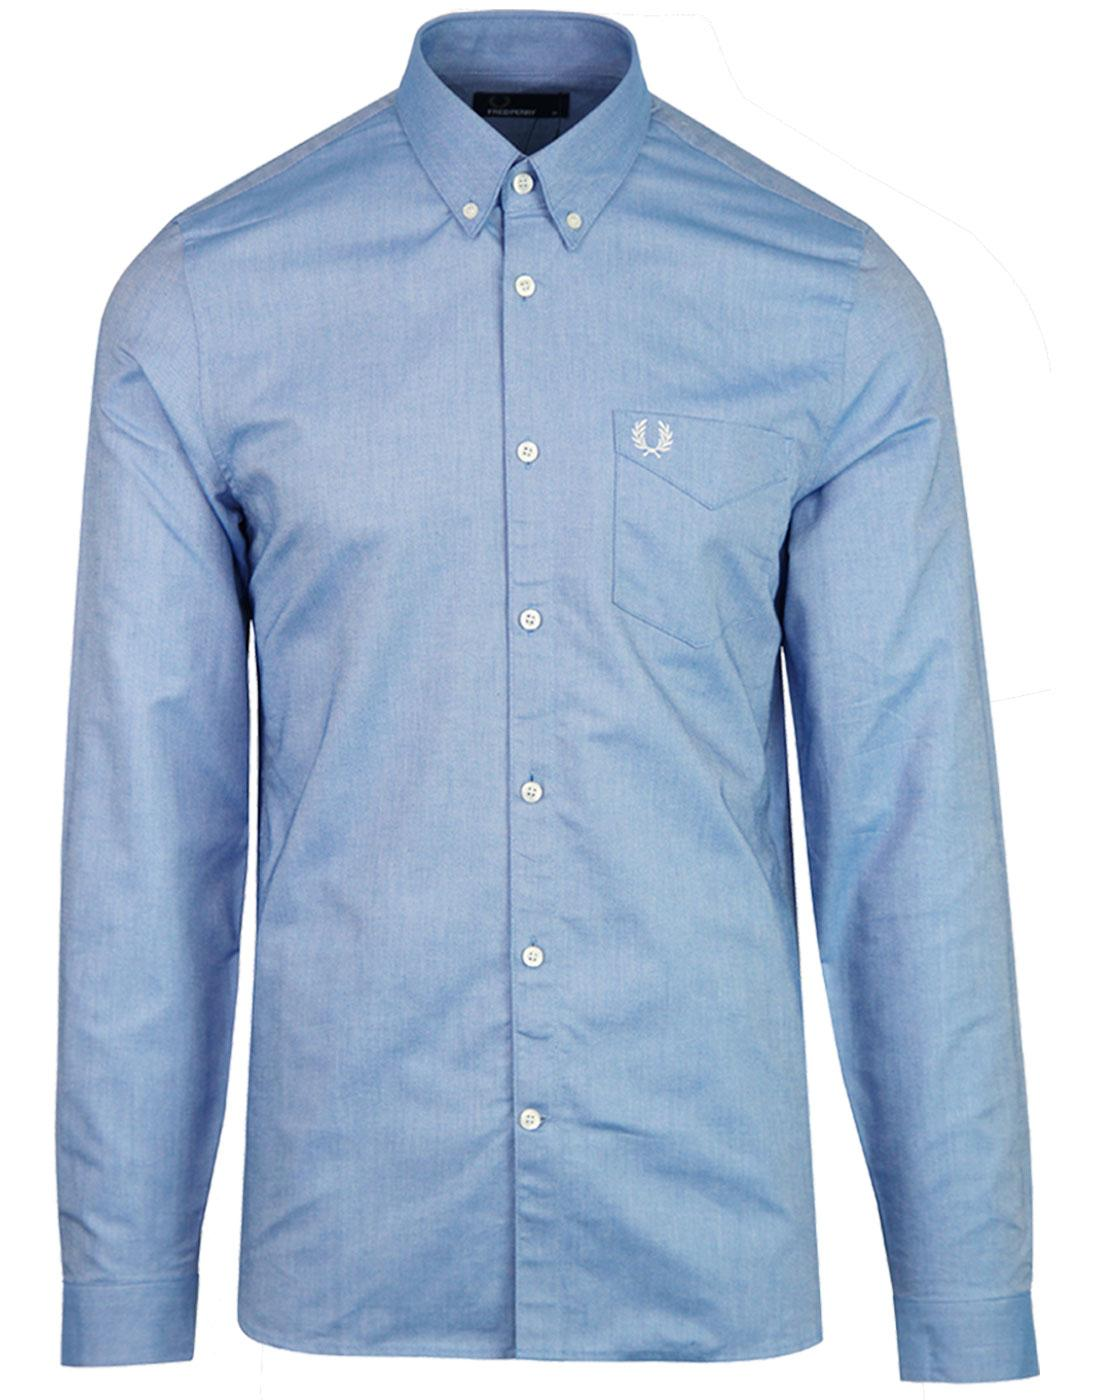 FRED PERRY Men's Retro Classic Mod Oxford Shirt MB